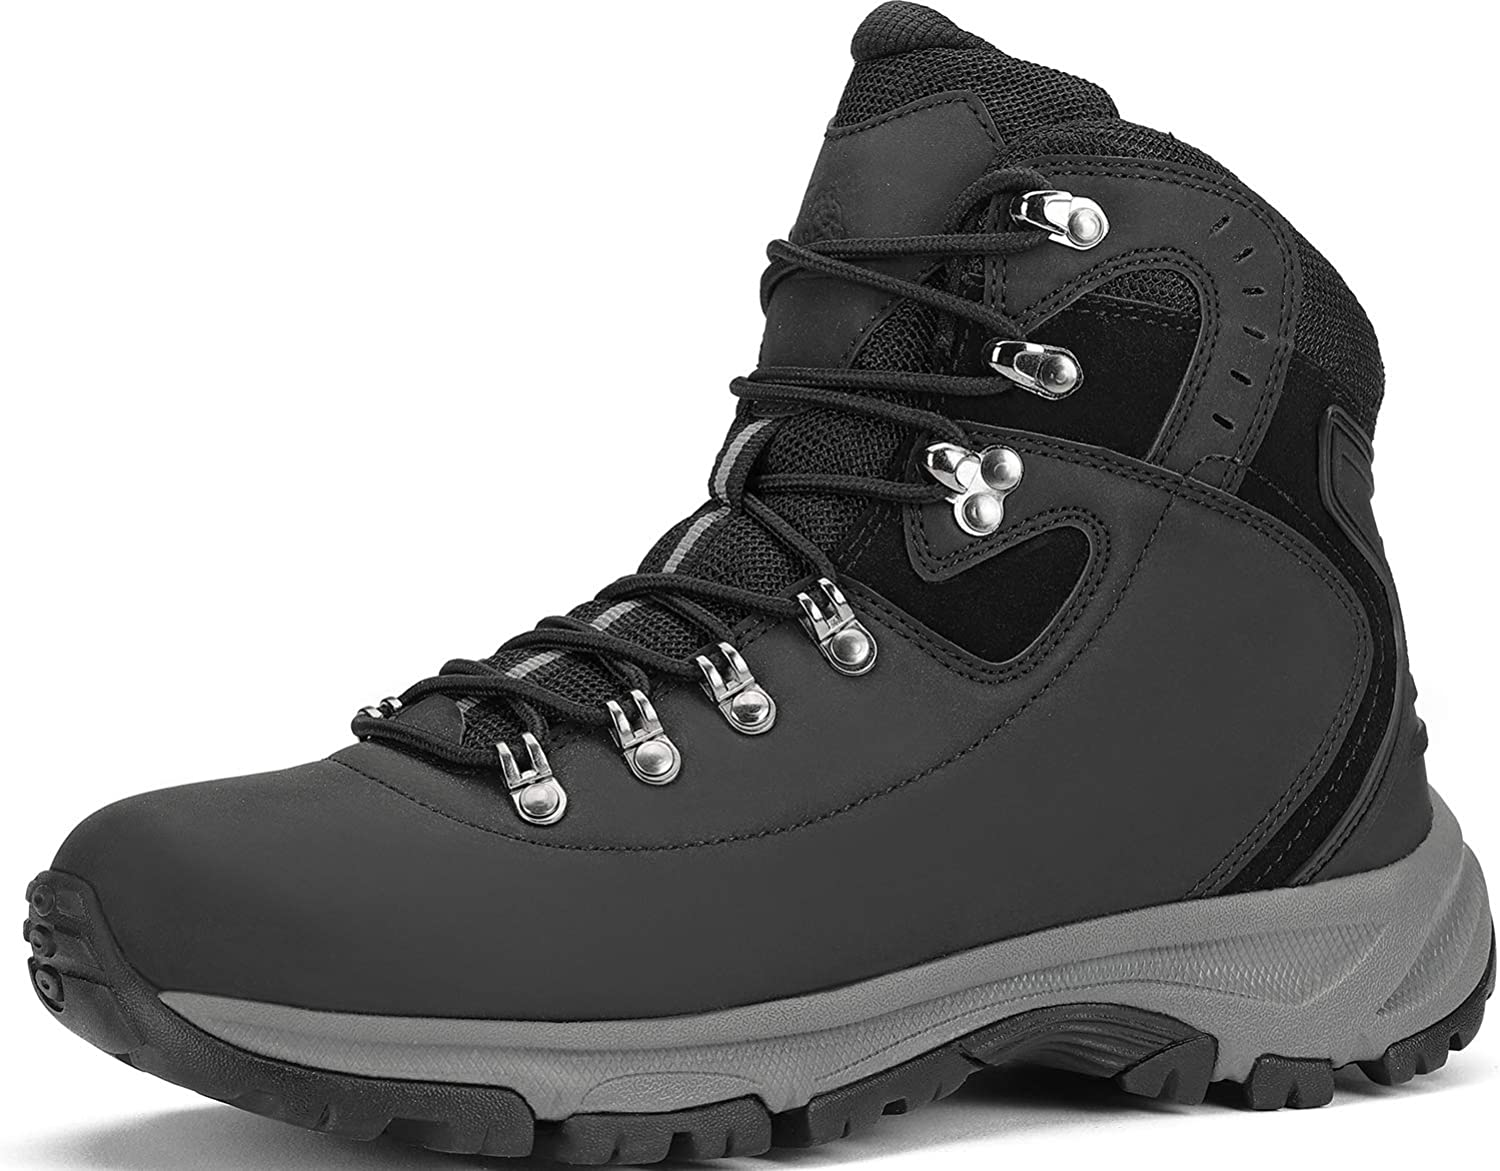 Hiking Boots Men Waterproof Lightweight Trekking Shoes High-Traction Grip Breathable